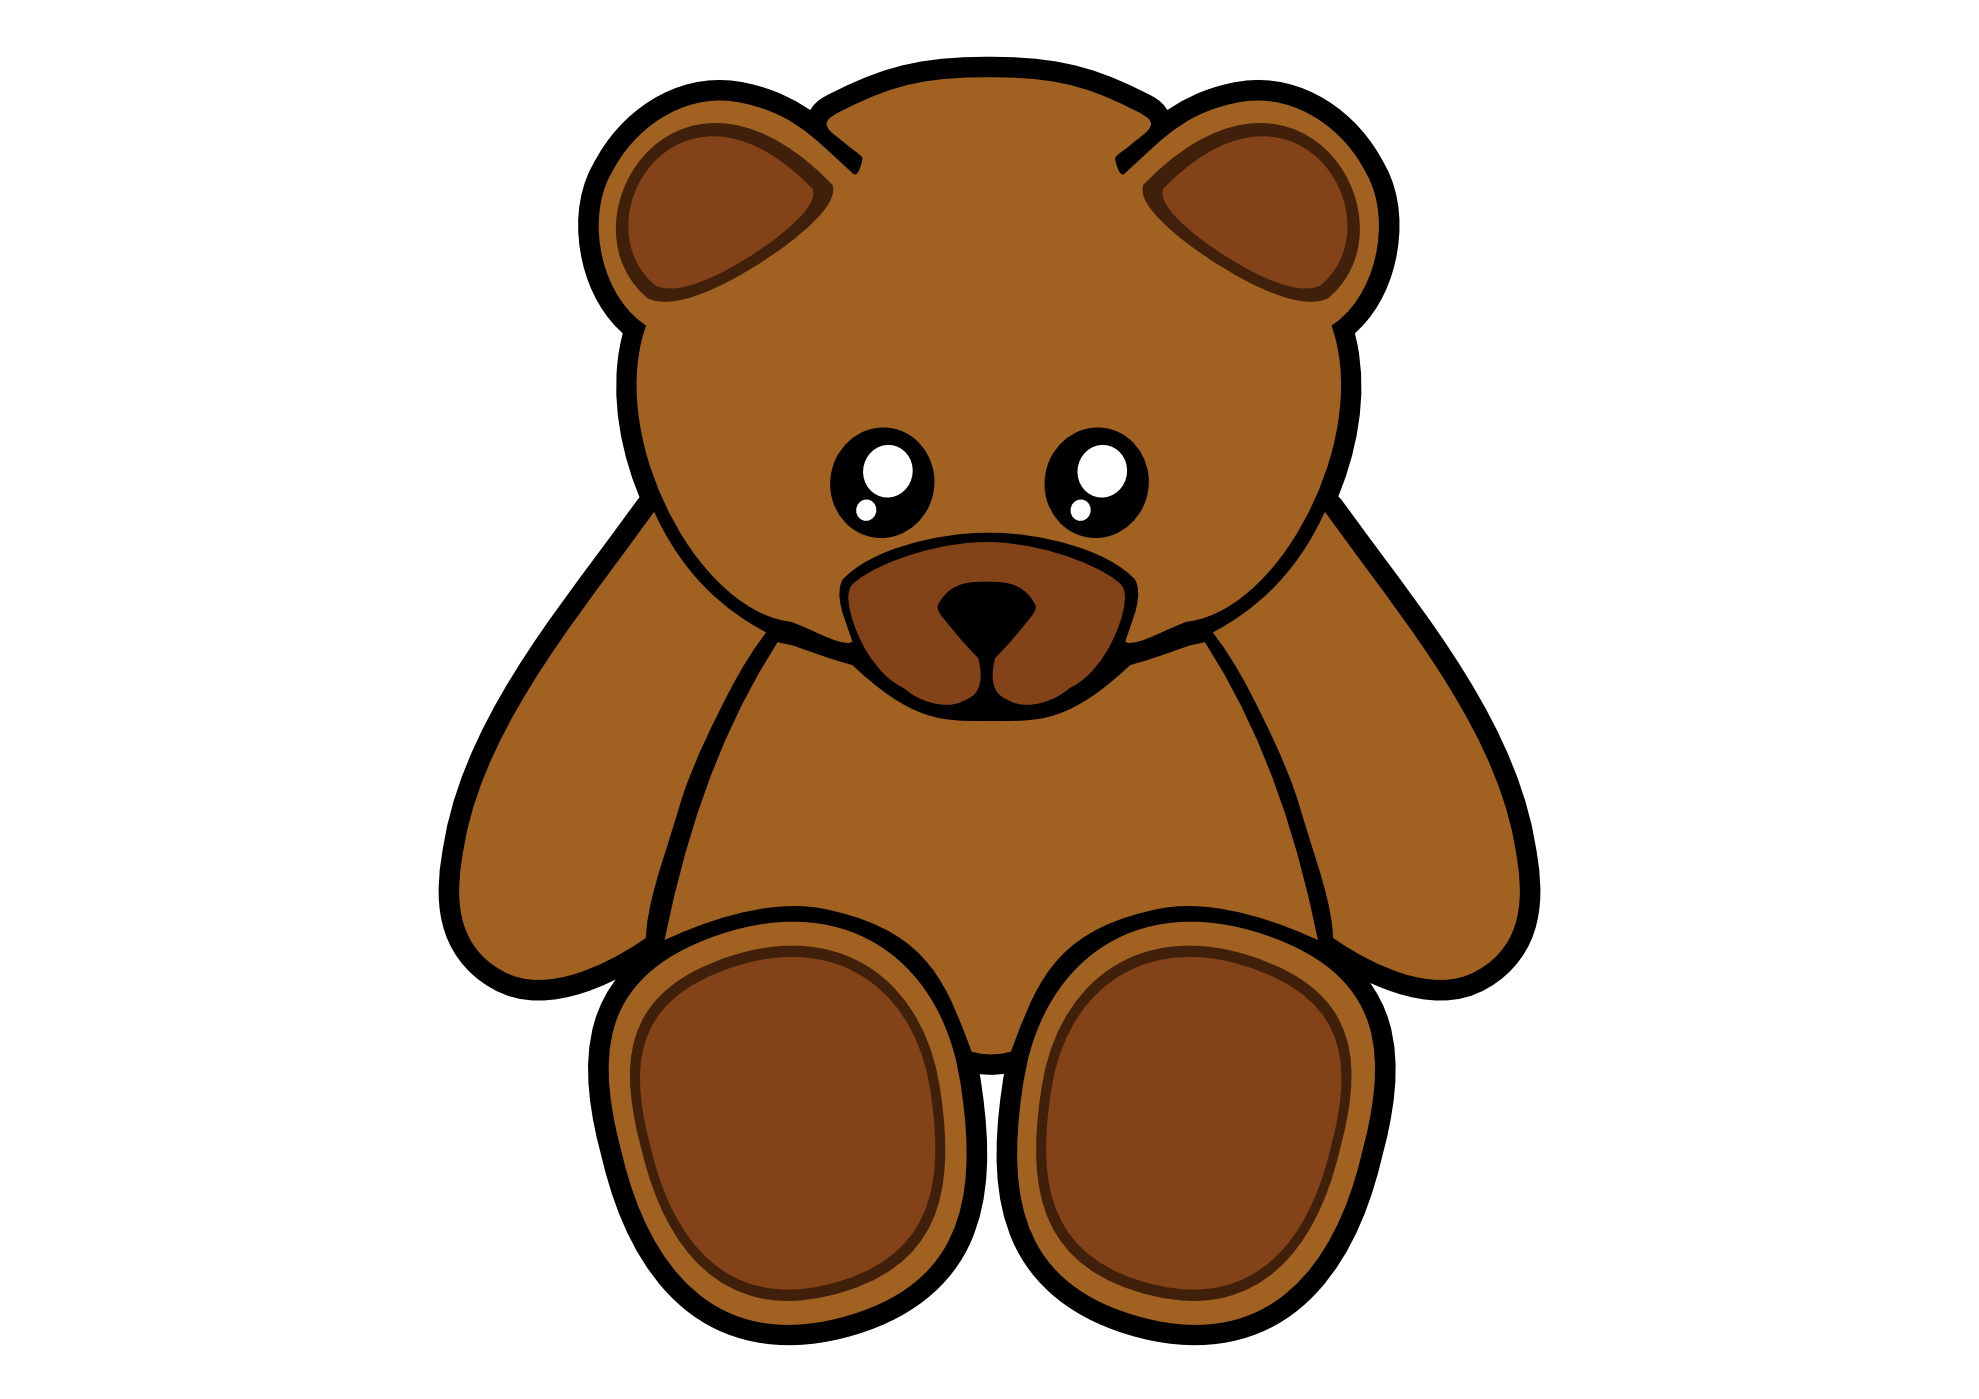 1979x1399 Teddy Bear Outline Clipart Free Images